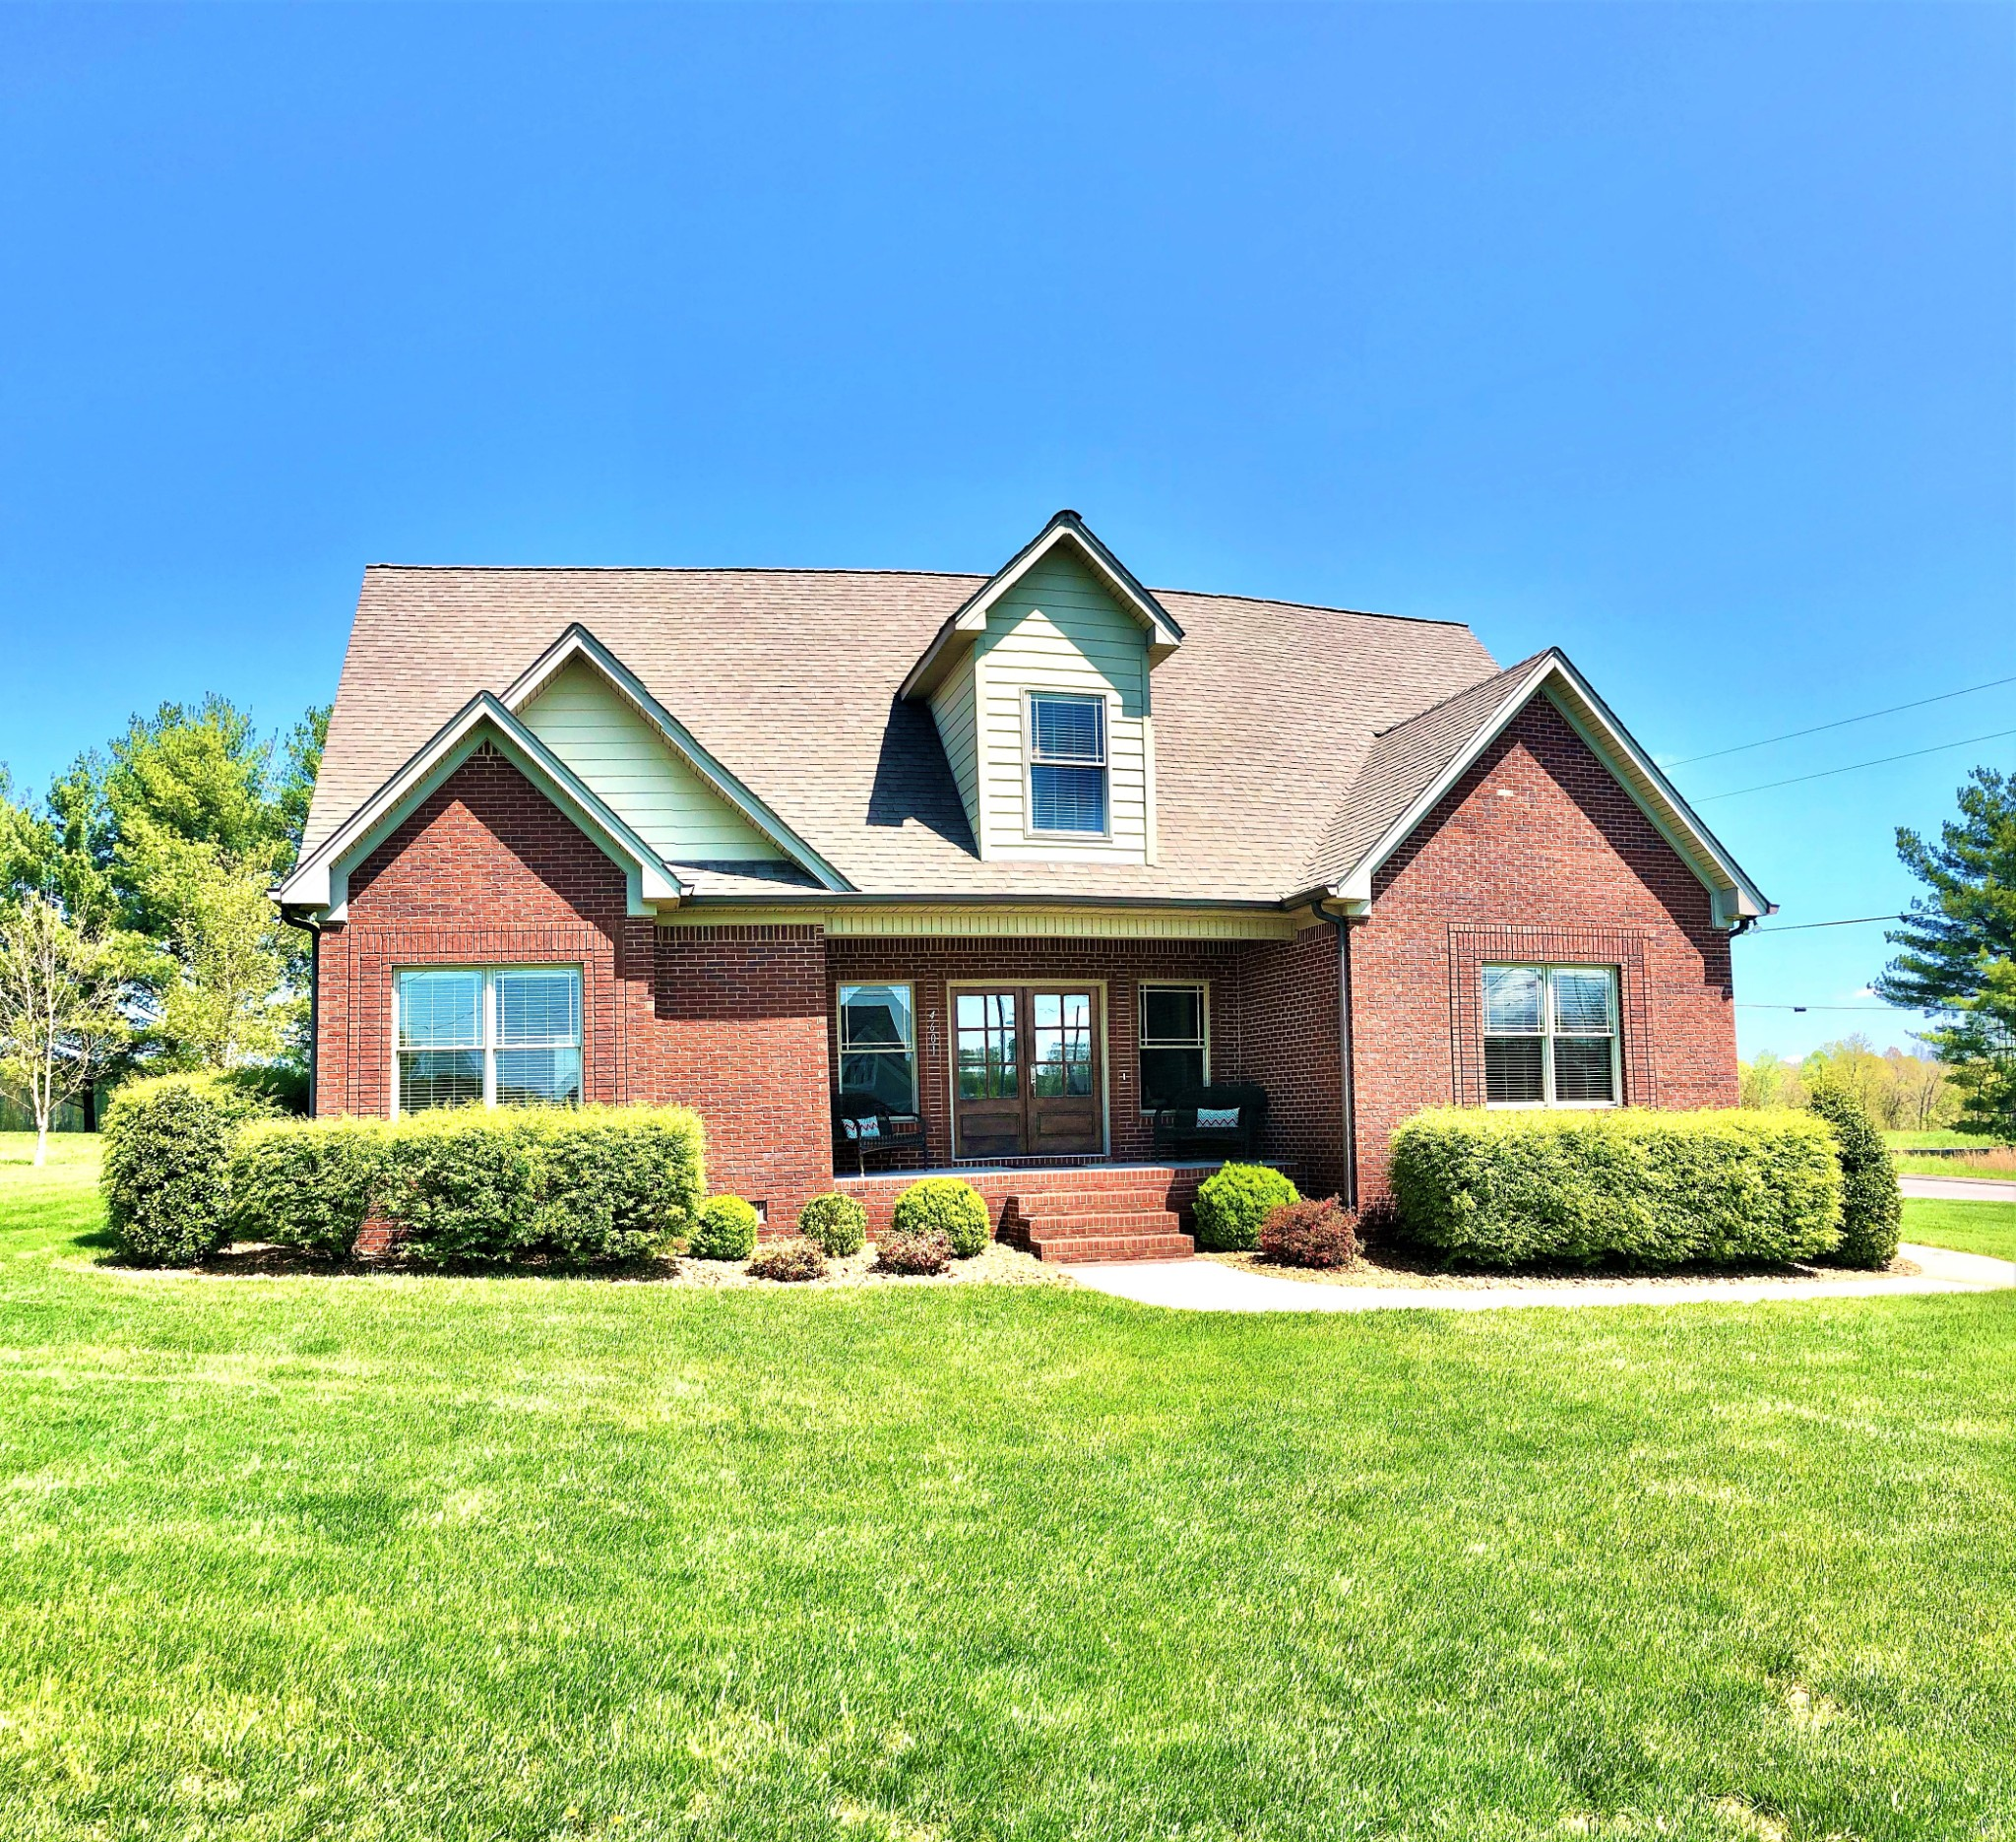 4601 Plantation Ln Property Photo - Cookeville, TN real estate listing